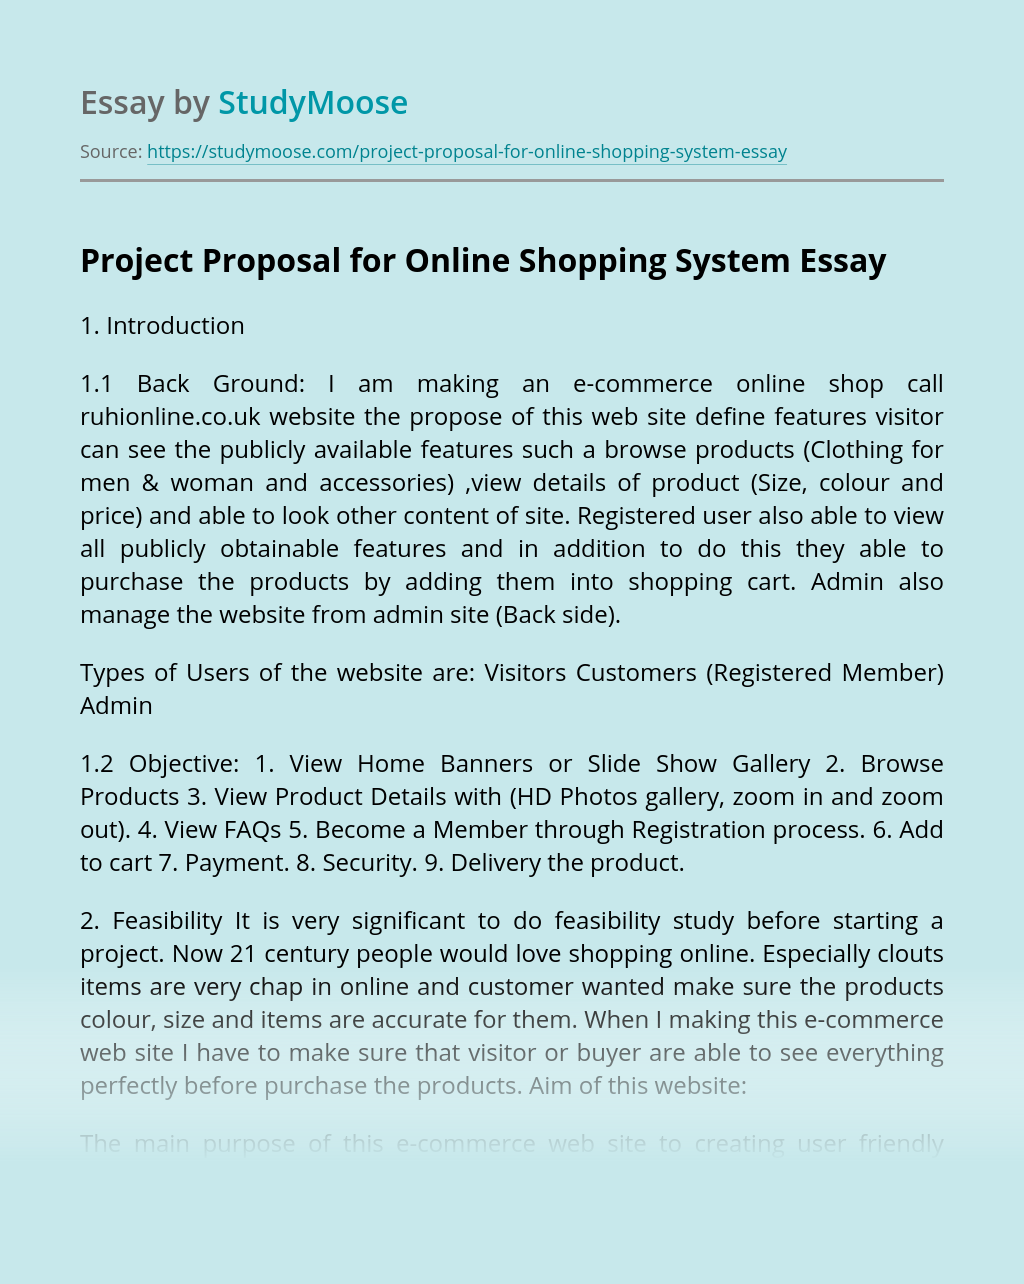 Project Proposal for Online Shopping System